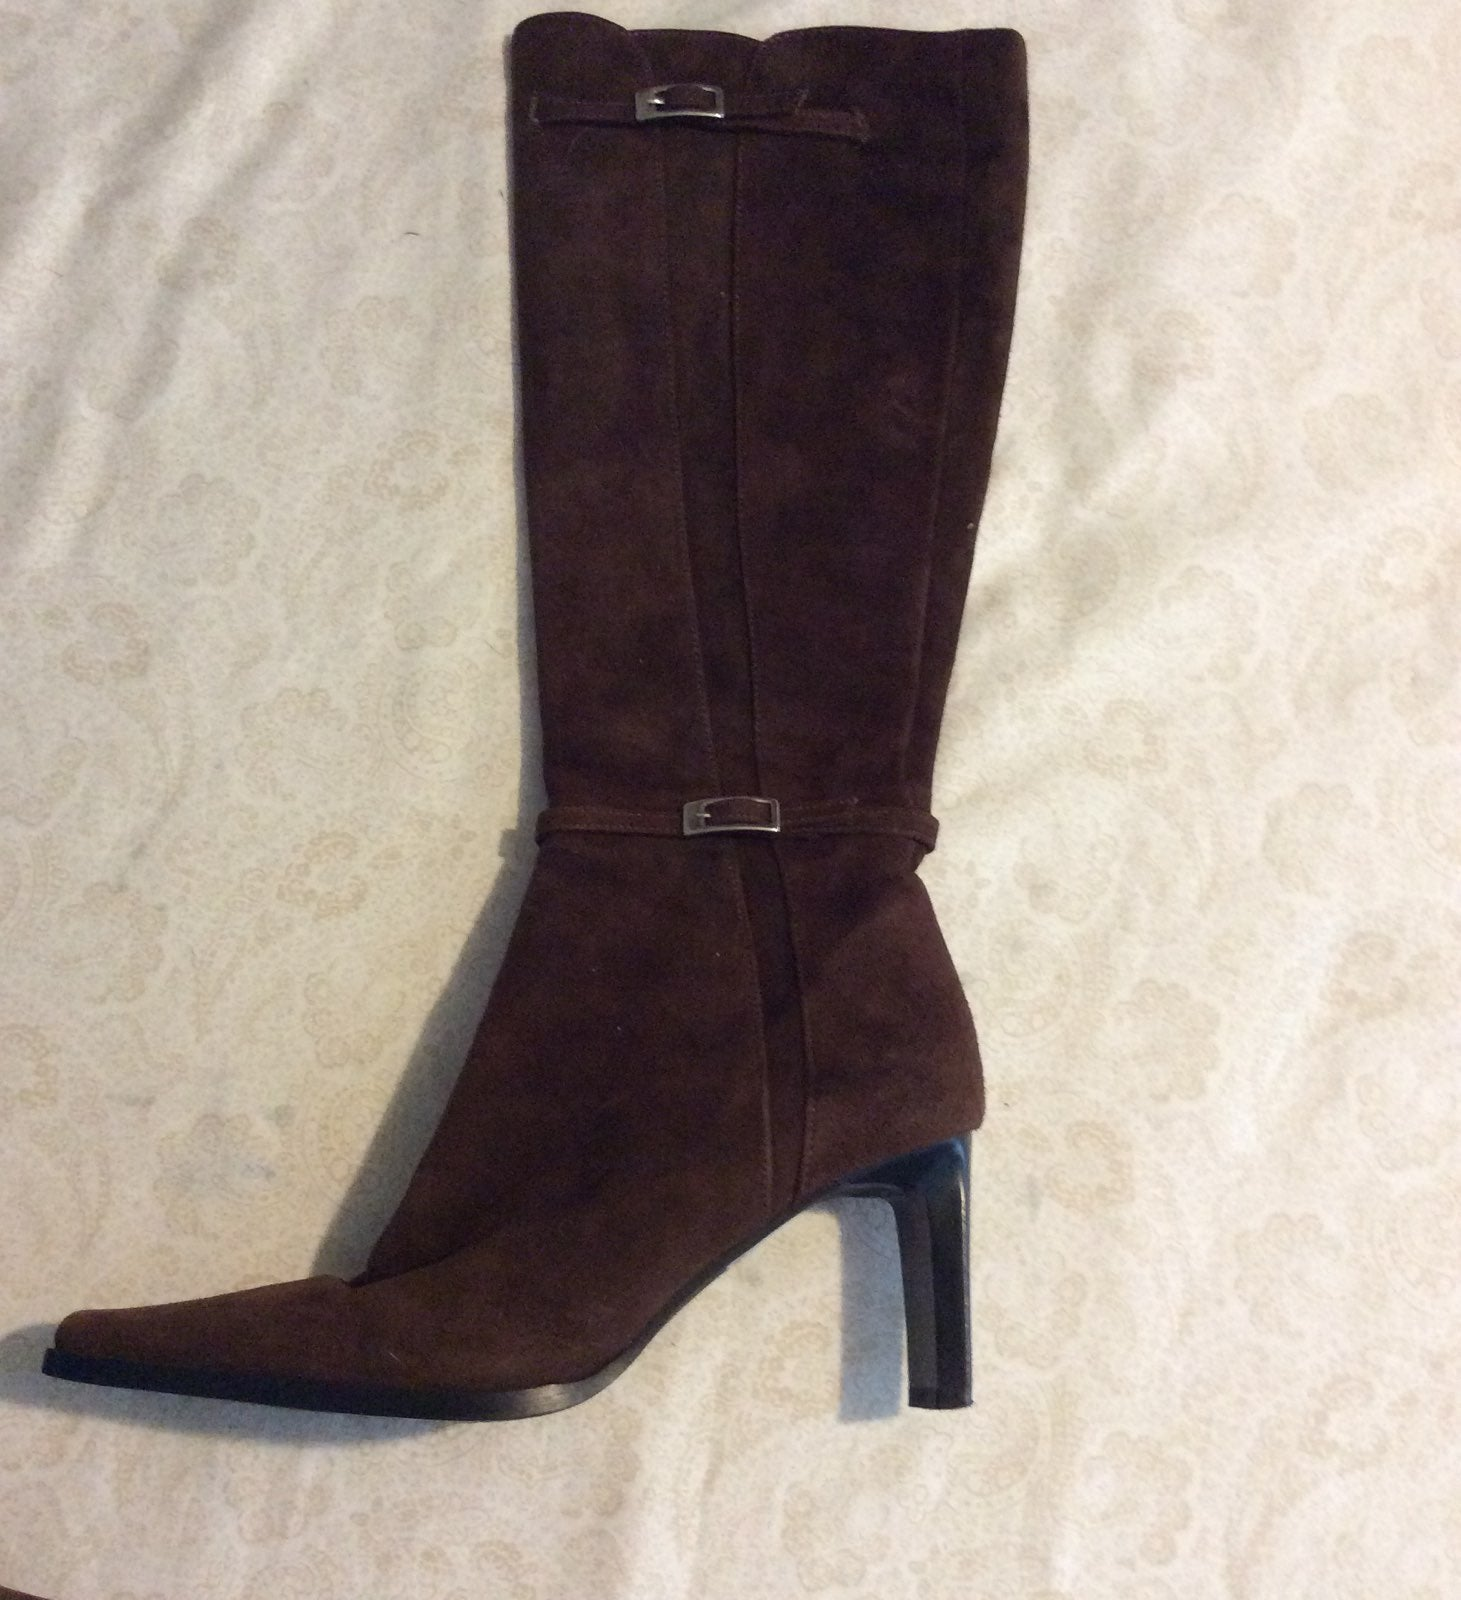 Privilege Womens Boots size 36 Made in I